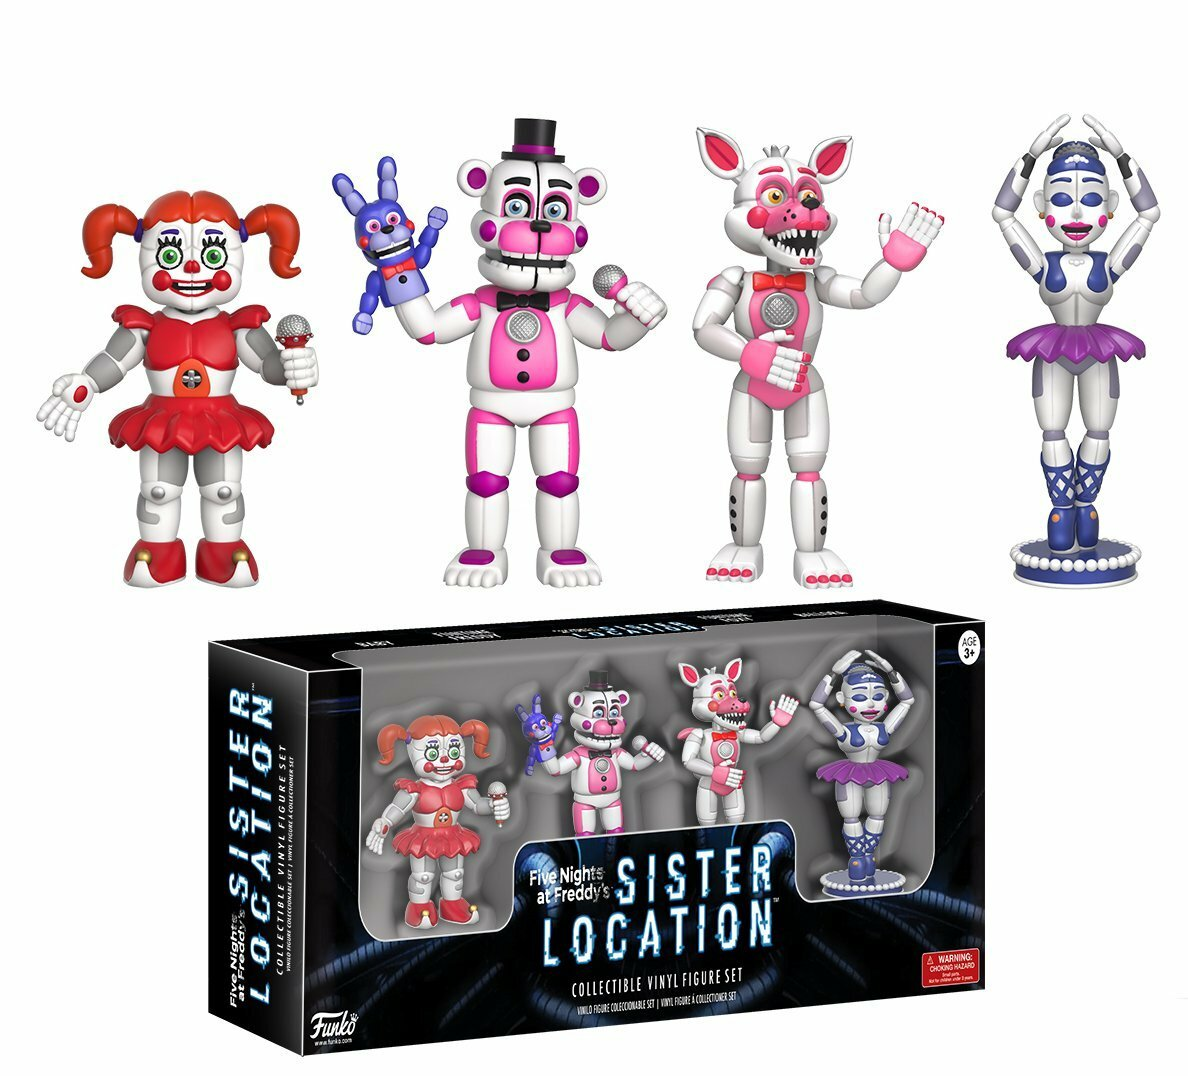 Sister Location (Set 1)